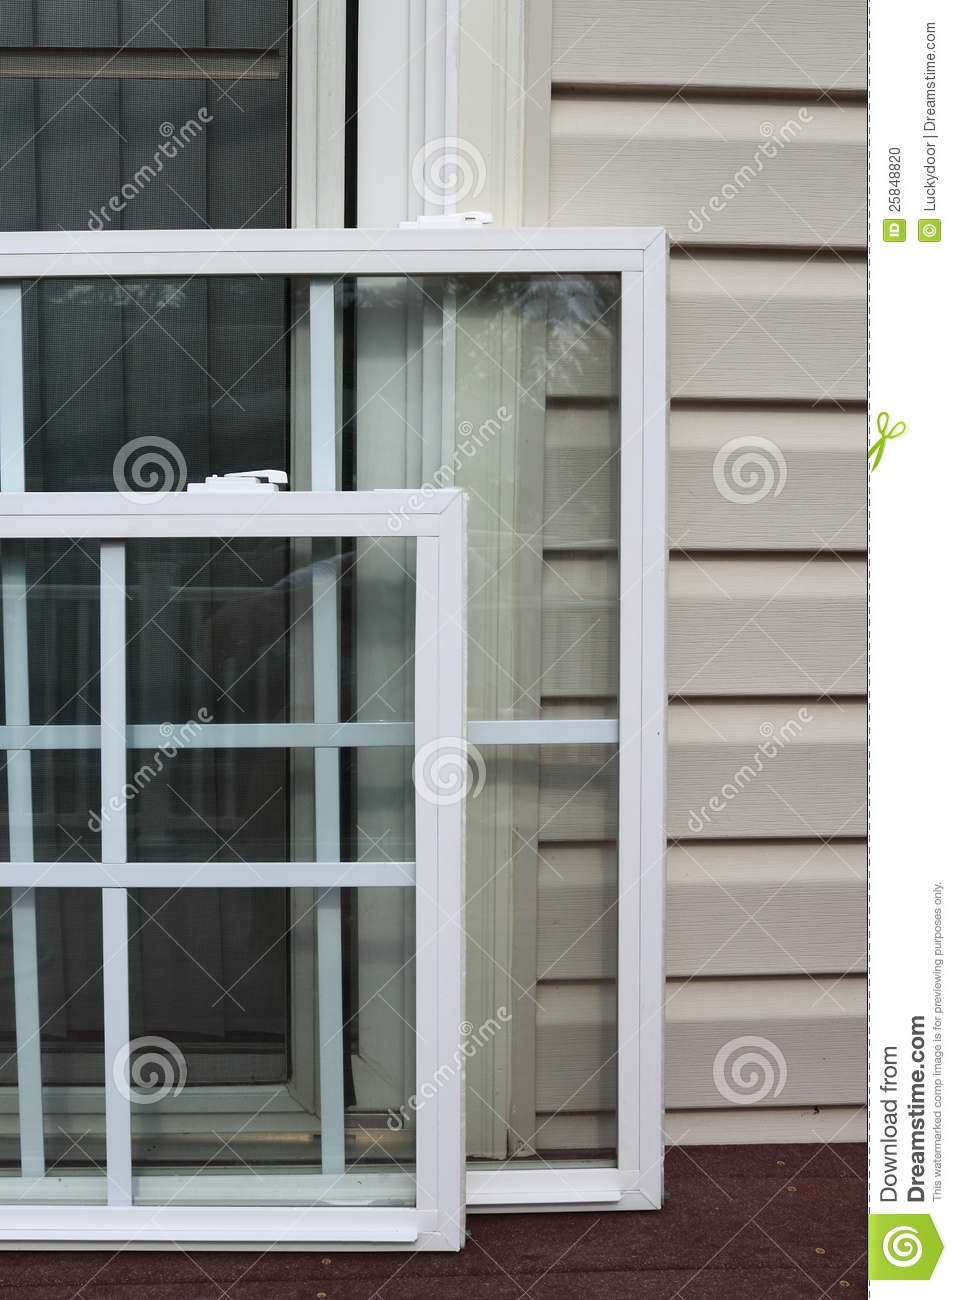 Energy Efficient Windows Stock Photo Image 25848820